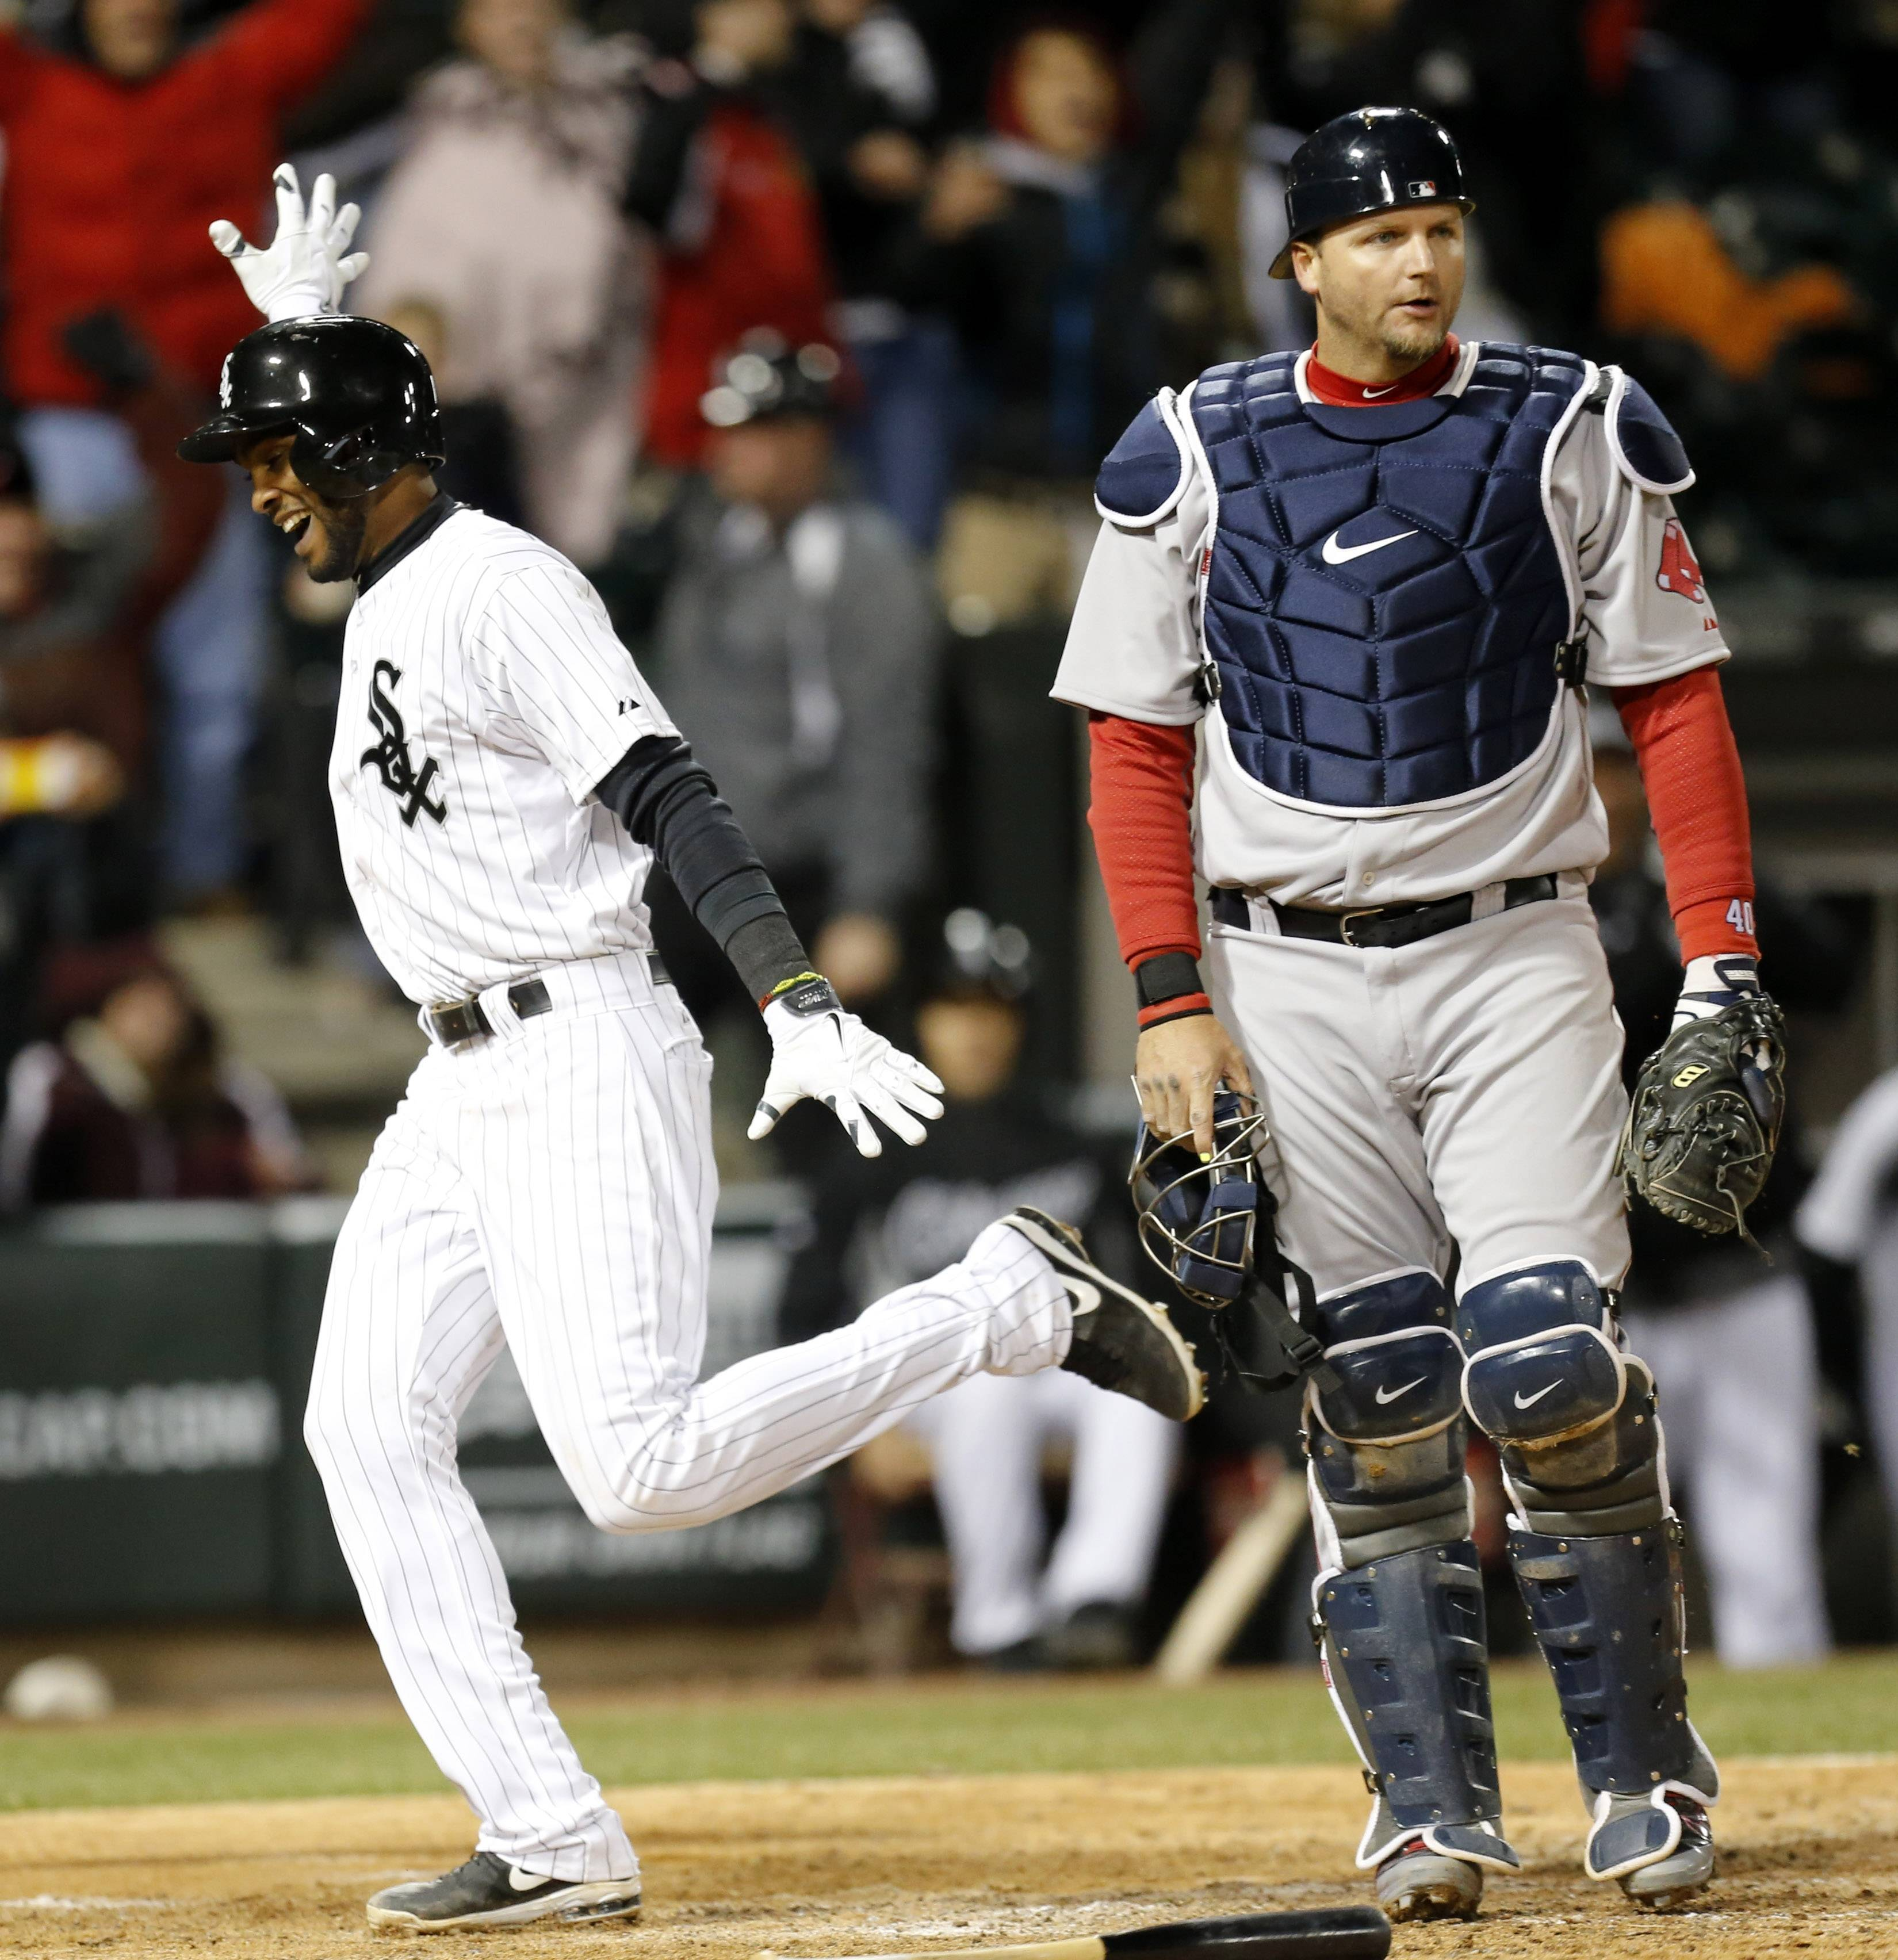 Chicago White Sox's Alexei Ramirez celebrates after scoring the game winning run off a throwing error by Boston Red Sox shortstop Xander Bogaerts as A.J. Pierzynski watches during the ninth inning of a baseball game Tuesday in Chicago. The White Sox won 2-1.